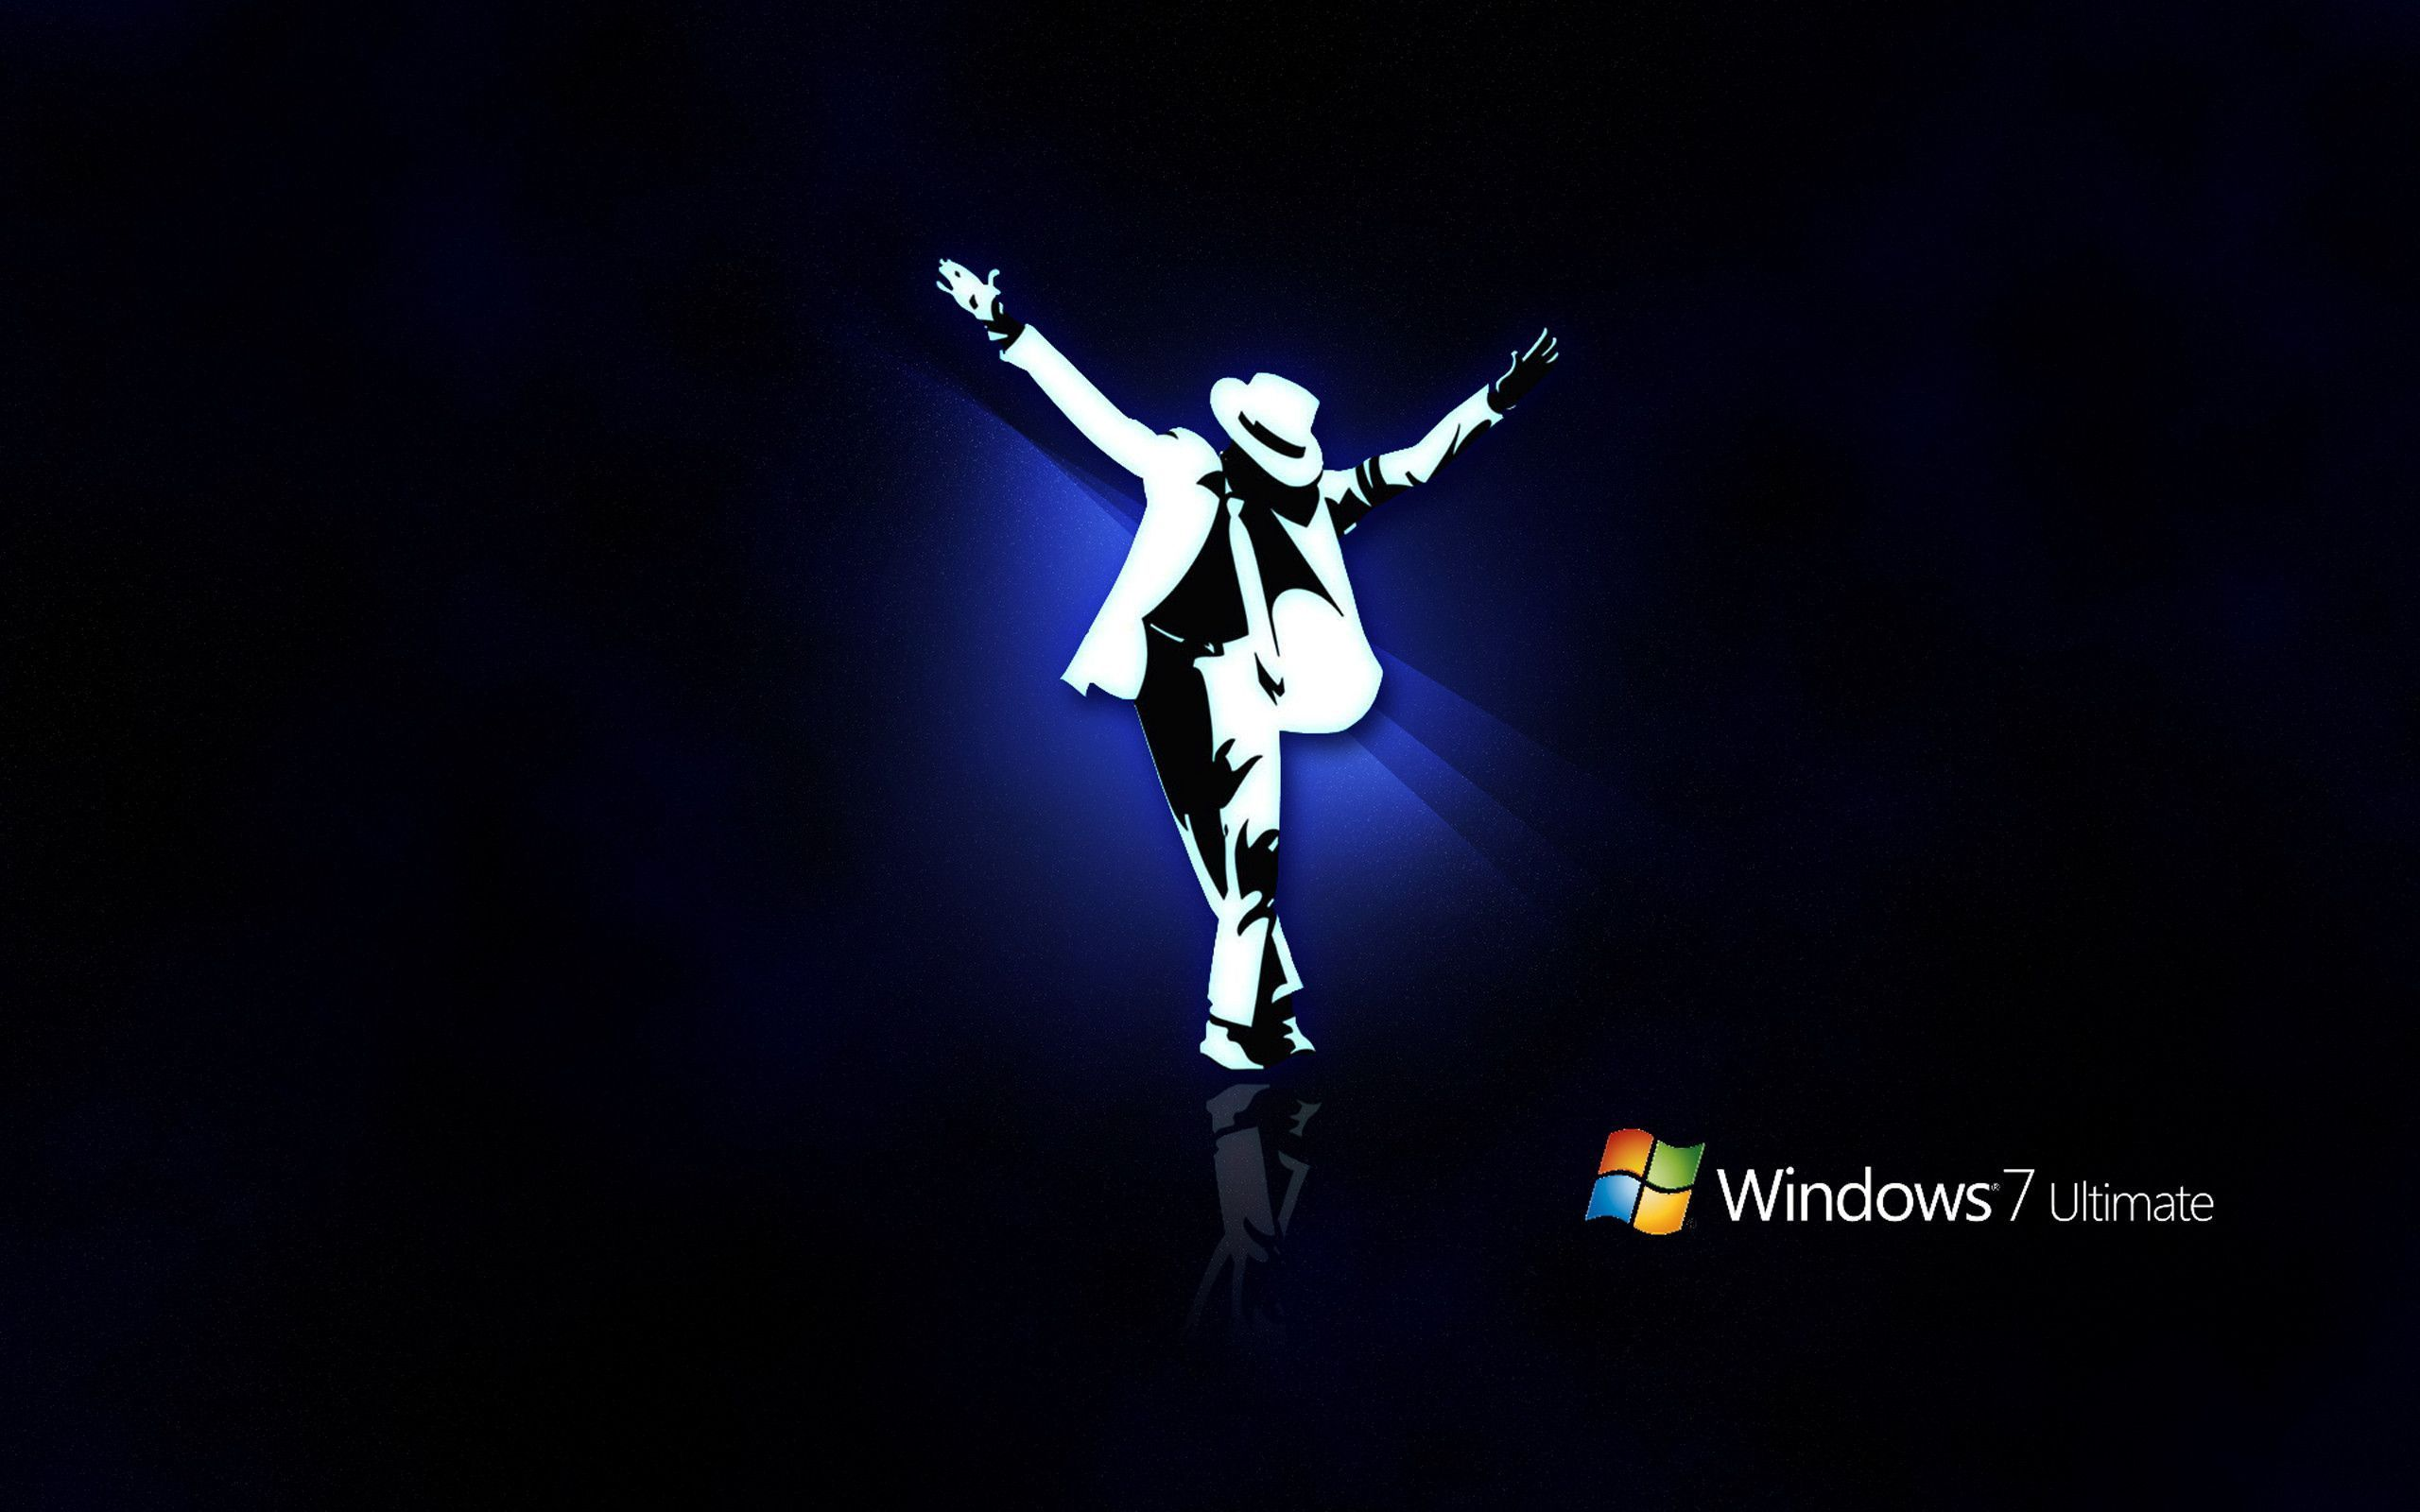 Windows 7 Ultimate 3D Wallpaper